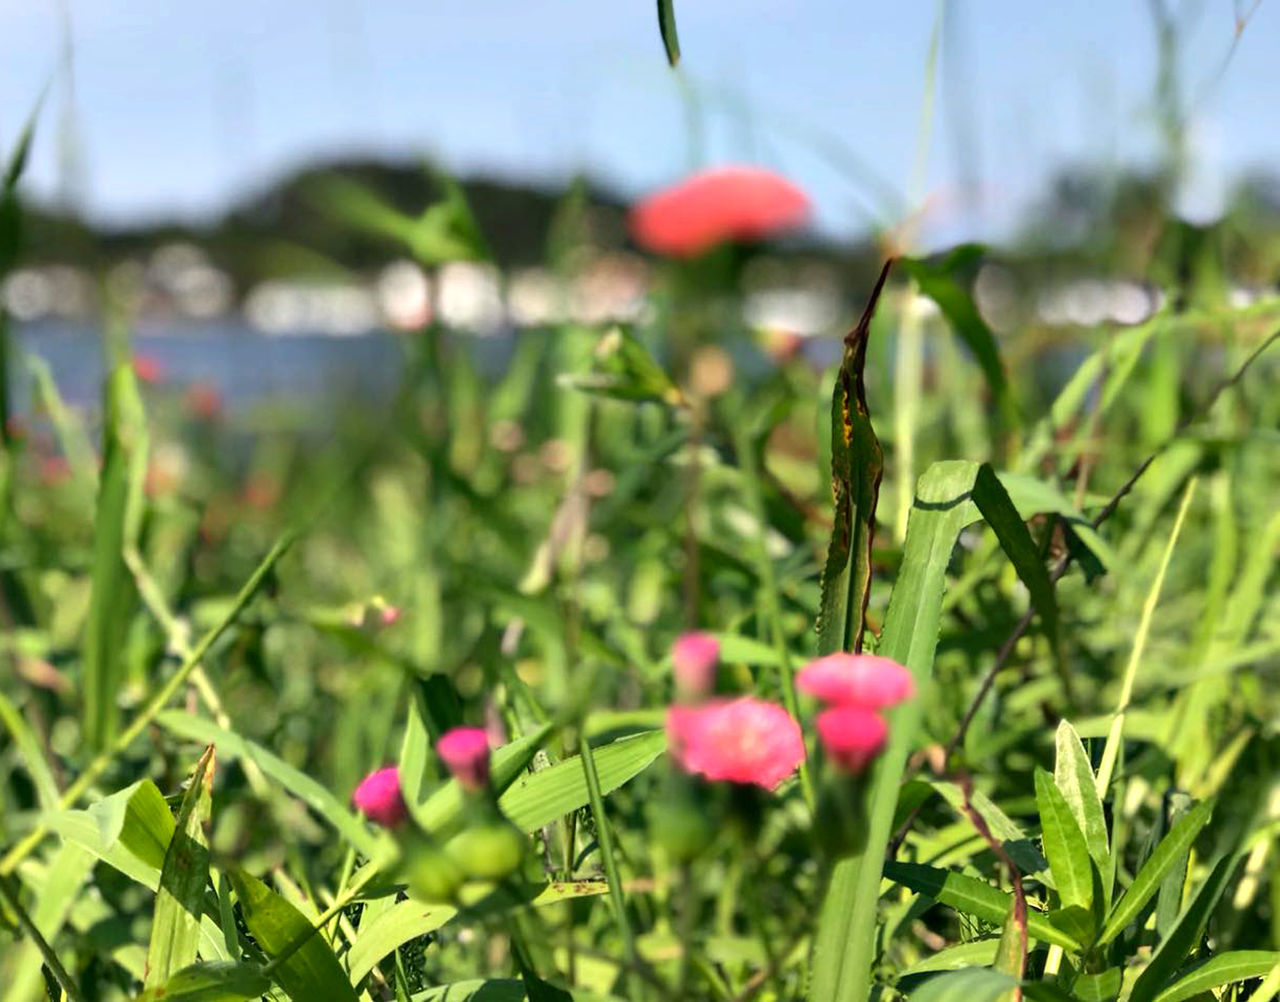 plant, growth, flower, flowering plant, beauty in nature, nature, green color, freshness, fragility, vulnerability, close-up, focus on foreground, selective focus, petal, pink color, field, day, no people, inflorescence, land, outdoors, flower head